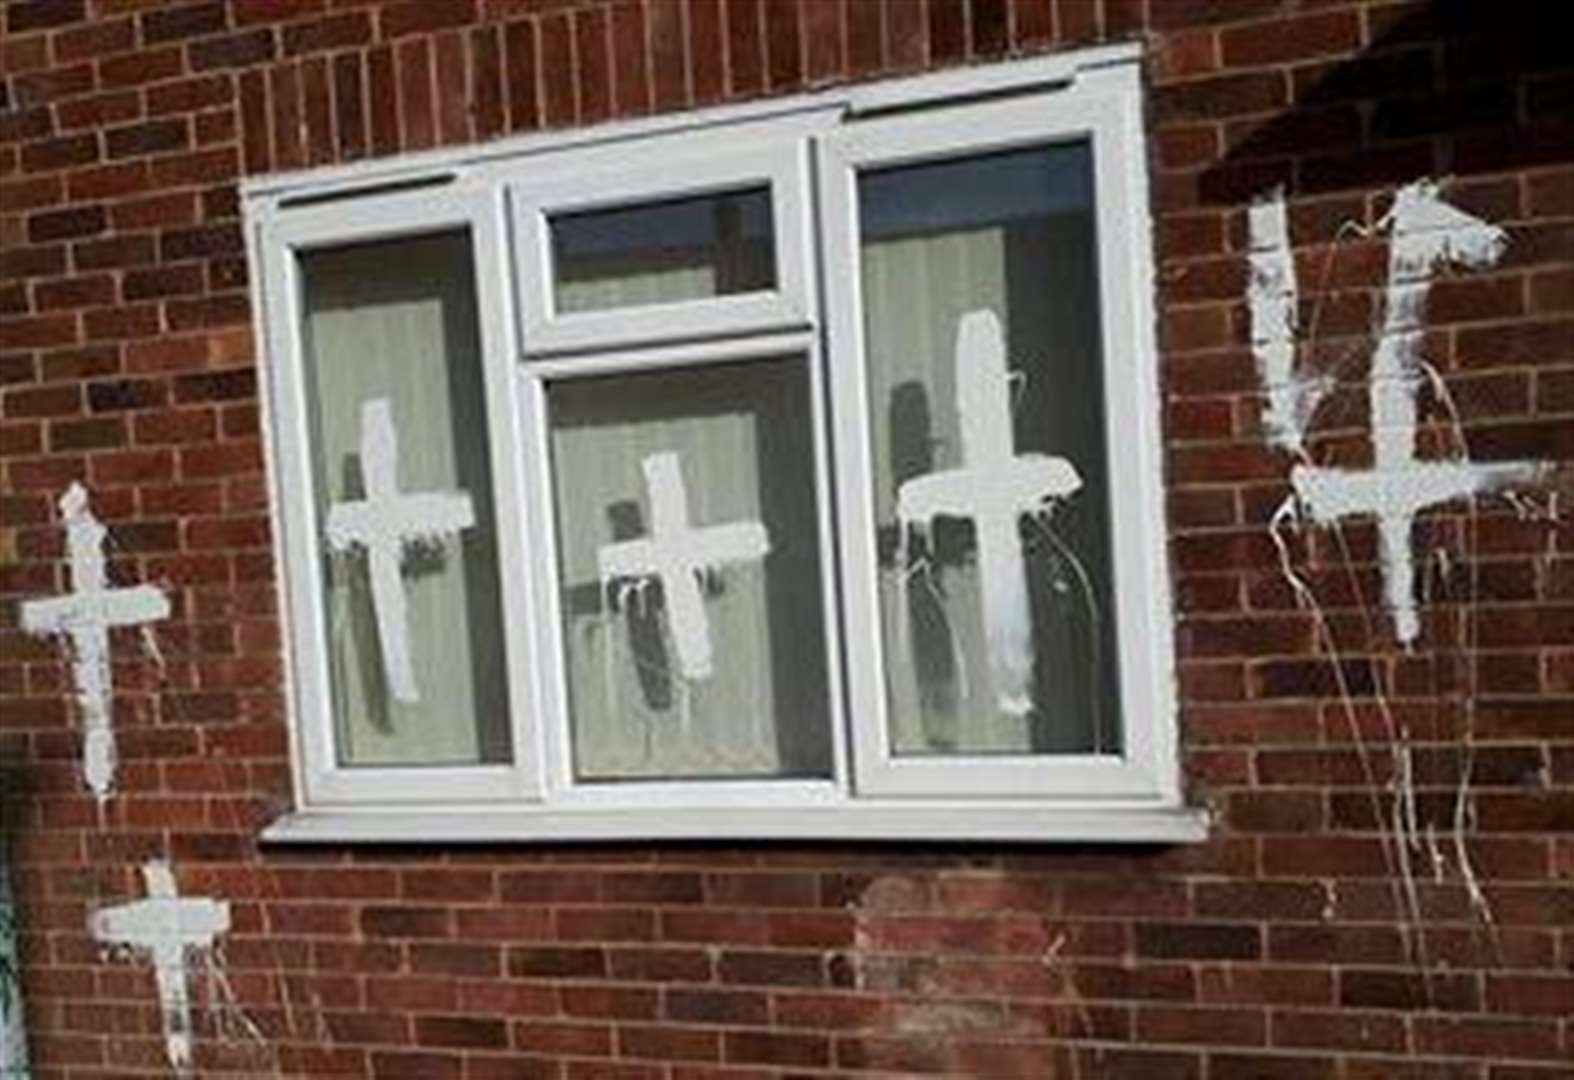 Couple 'living in fear' after Spalding home is vandalised